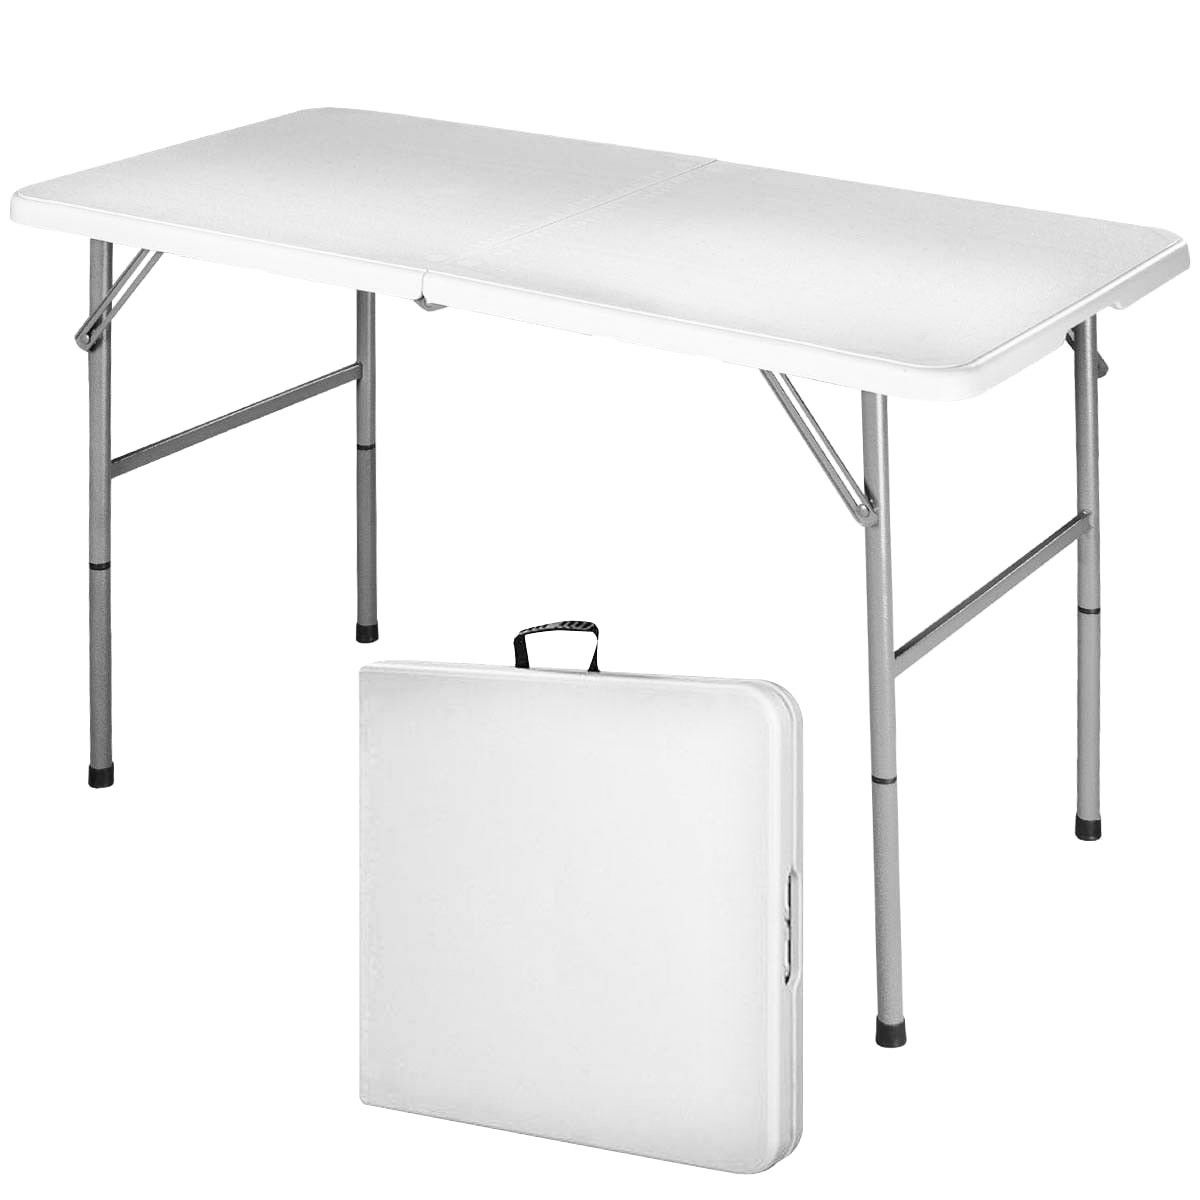 Costway 4' Folding Table Portable Indoor Outdoor Picnic Party Dining Camp Tables Utility by Costway